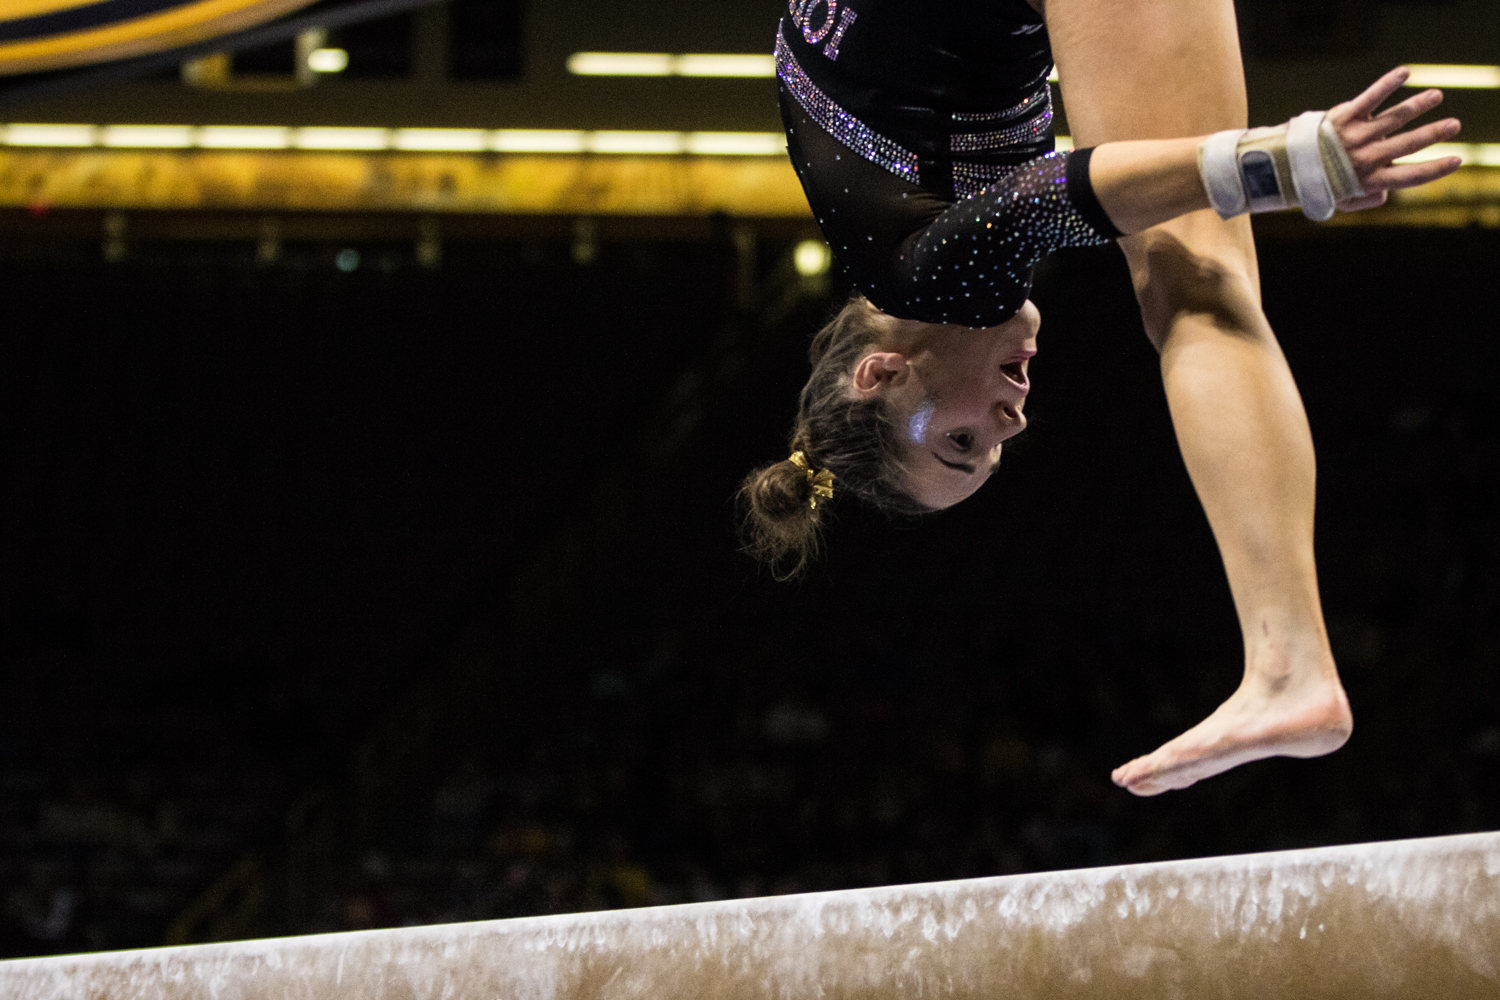 Iowa%27s+Allie+Gilchrist+competes+on+beam+during+a+women%27s+gymnastics+meet+between+Iowa+and+Iowa+State+at+Carver-Hawkeye+Arena+on+Friday%2C+March+1%2C+2019.+Gilchrist+scored+9.075+in+the+event.+The+Hawkeyes%2C+celebrating+senior+night%2C+fell+to+the+Cyclones%2C+196.275-196.250.